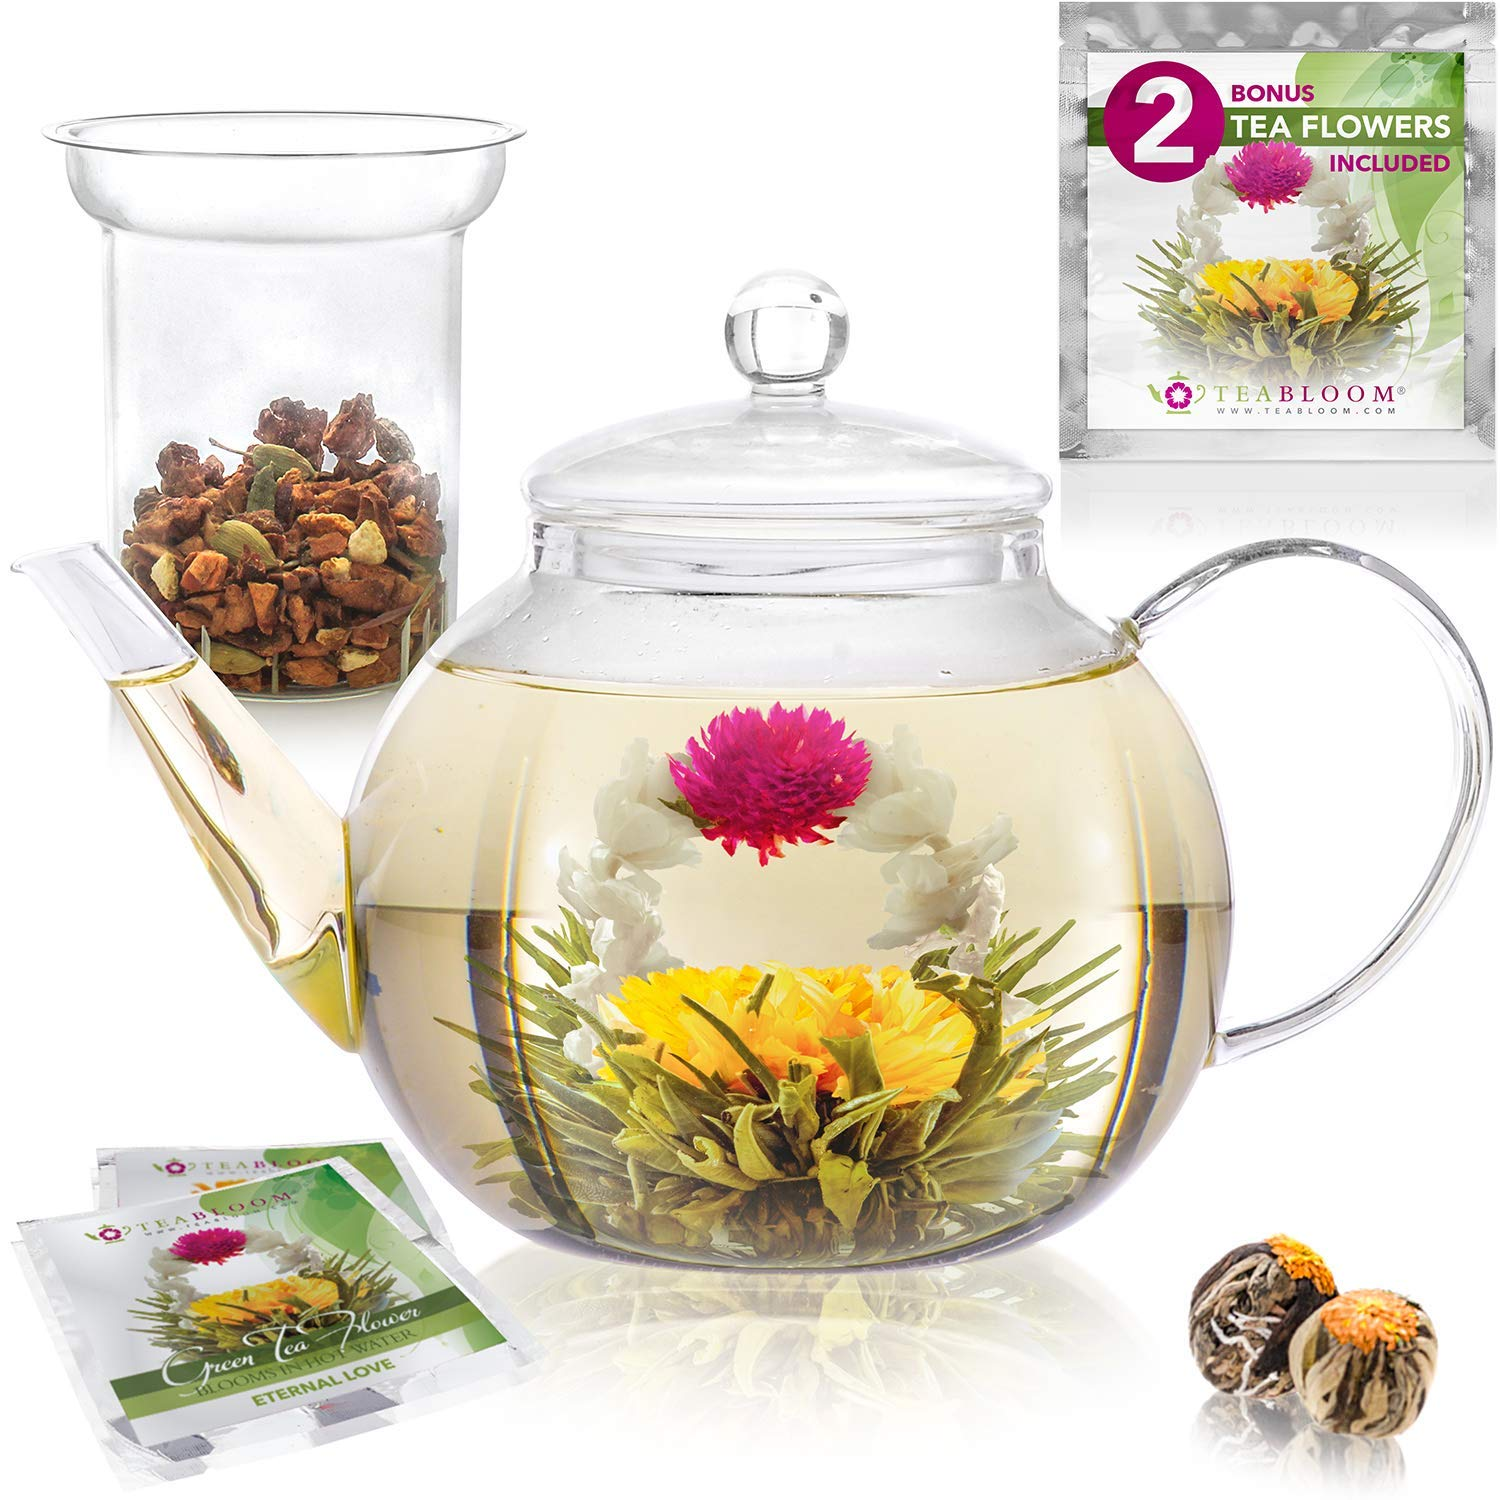 Teabloom Stovetop & Microwave Safe Glass Teapot (40 OZ / 1.2 L) with Removable Loose Tea Glass Infuser – Includes 2 Blooming Teas – Premium Quality Borosilicate Glass Teapot (Holds 4-5 Cups)